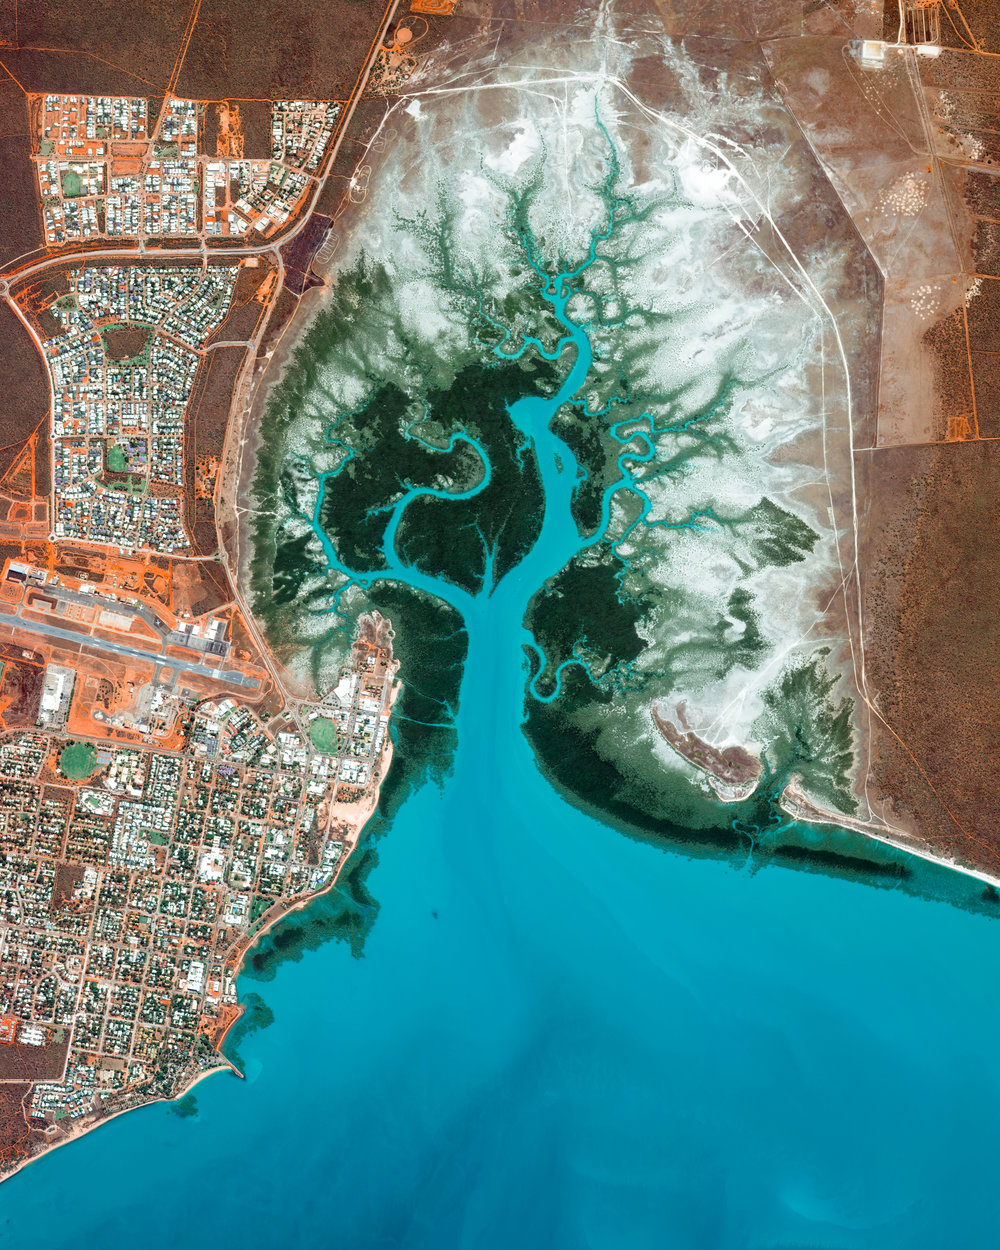 "Dampier Creek winds its way inland to form the eastern border of Broome, a coastal town in Western Australia. Broome is home to roughly 14,000 people, but its population can grow to upwards of 45,000 per month during peak tourist season from June to August. Its 14-mile (22-km) white-sand Cable Beach, paleontology exhibits, pearl farms, and other attractions make it a popular destination for travelers around the world.  17°57'32.4""S, 122°14'49.8""E  Source imagery: DigitalGlobe"